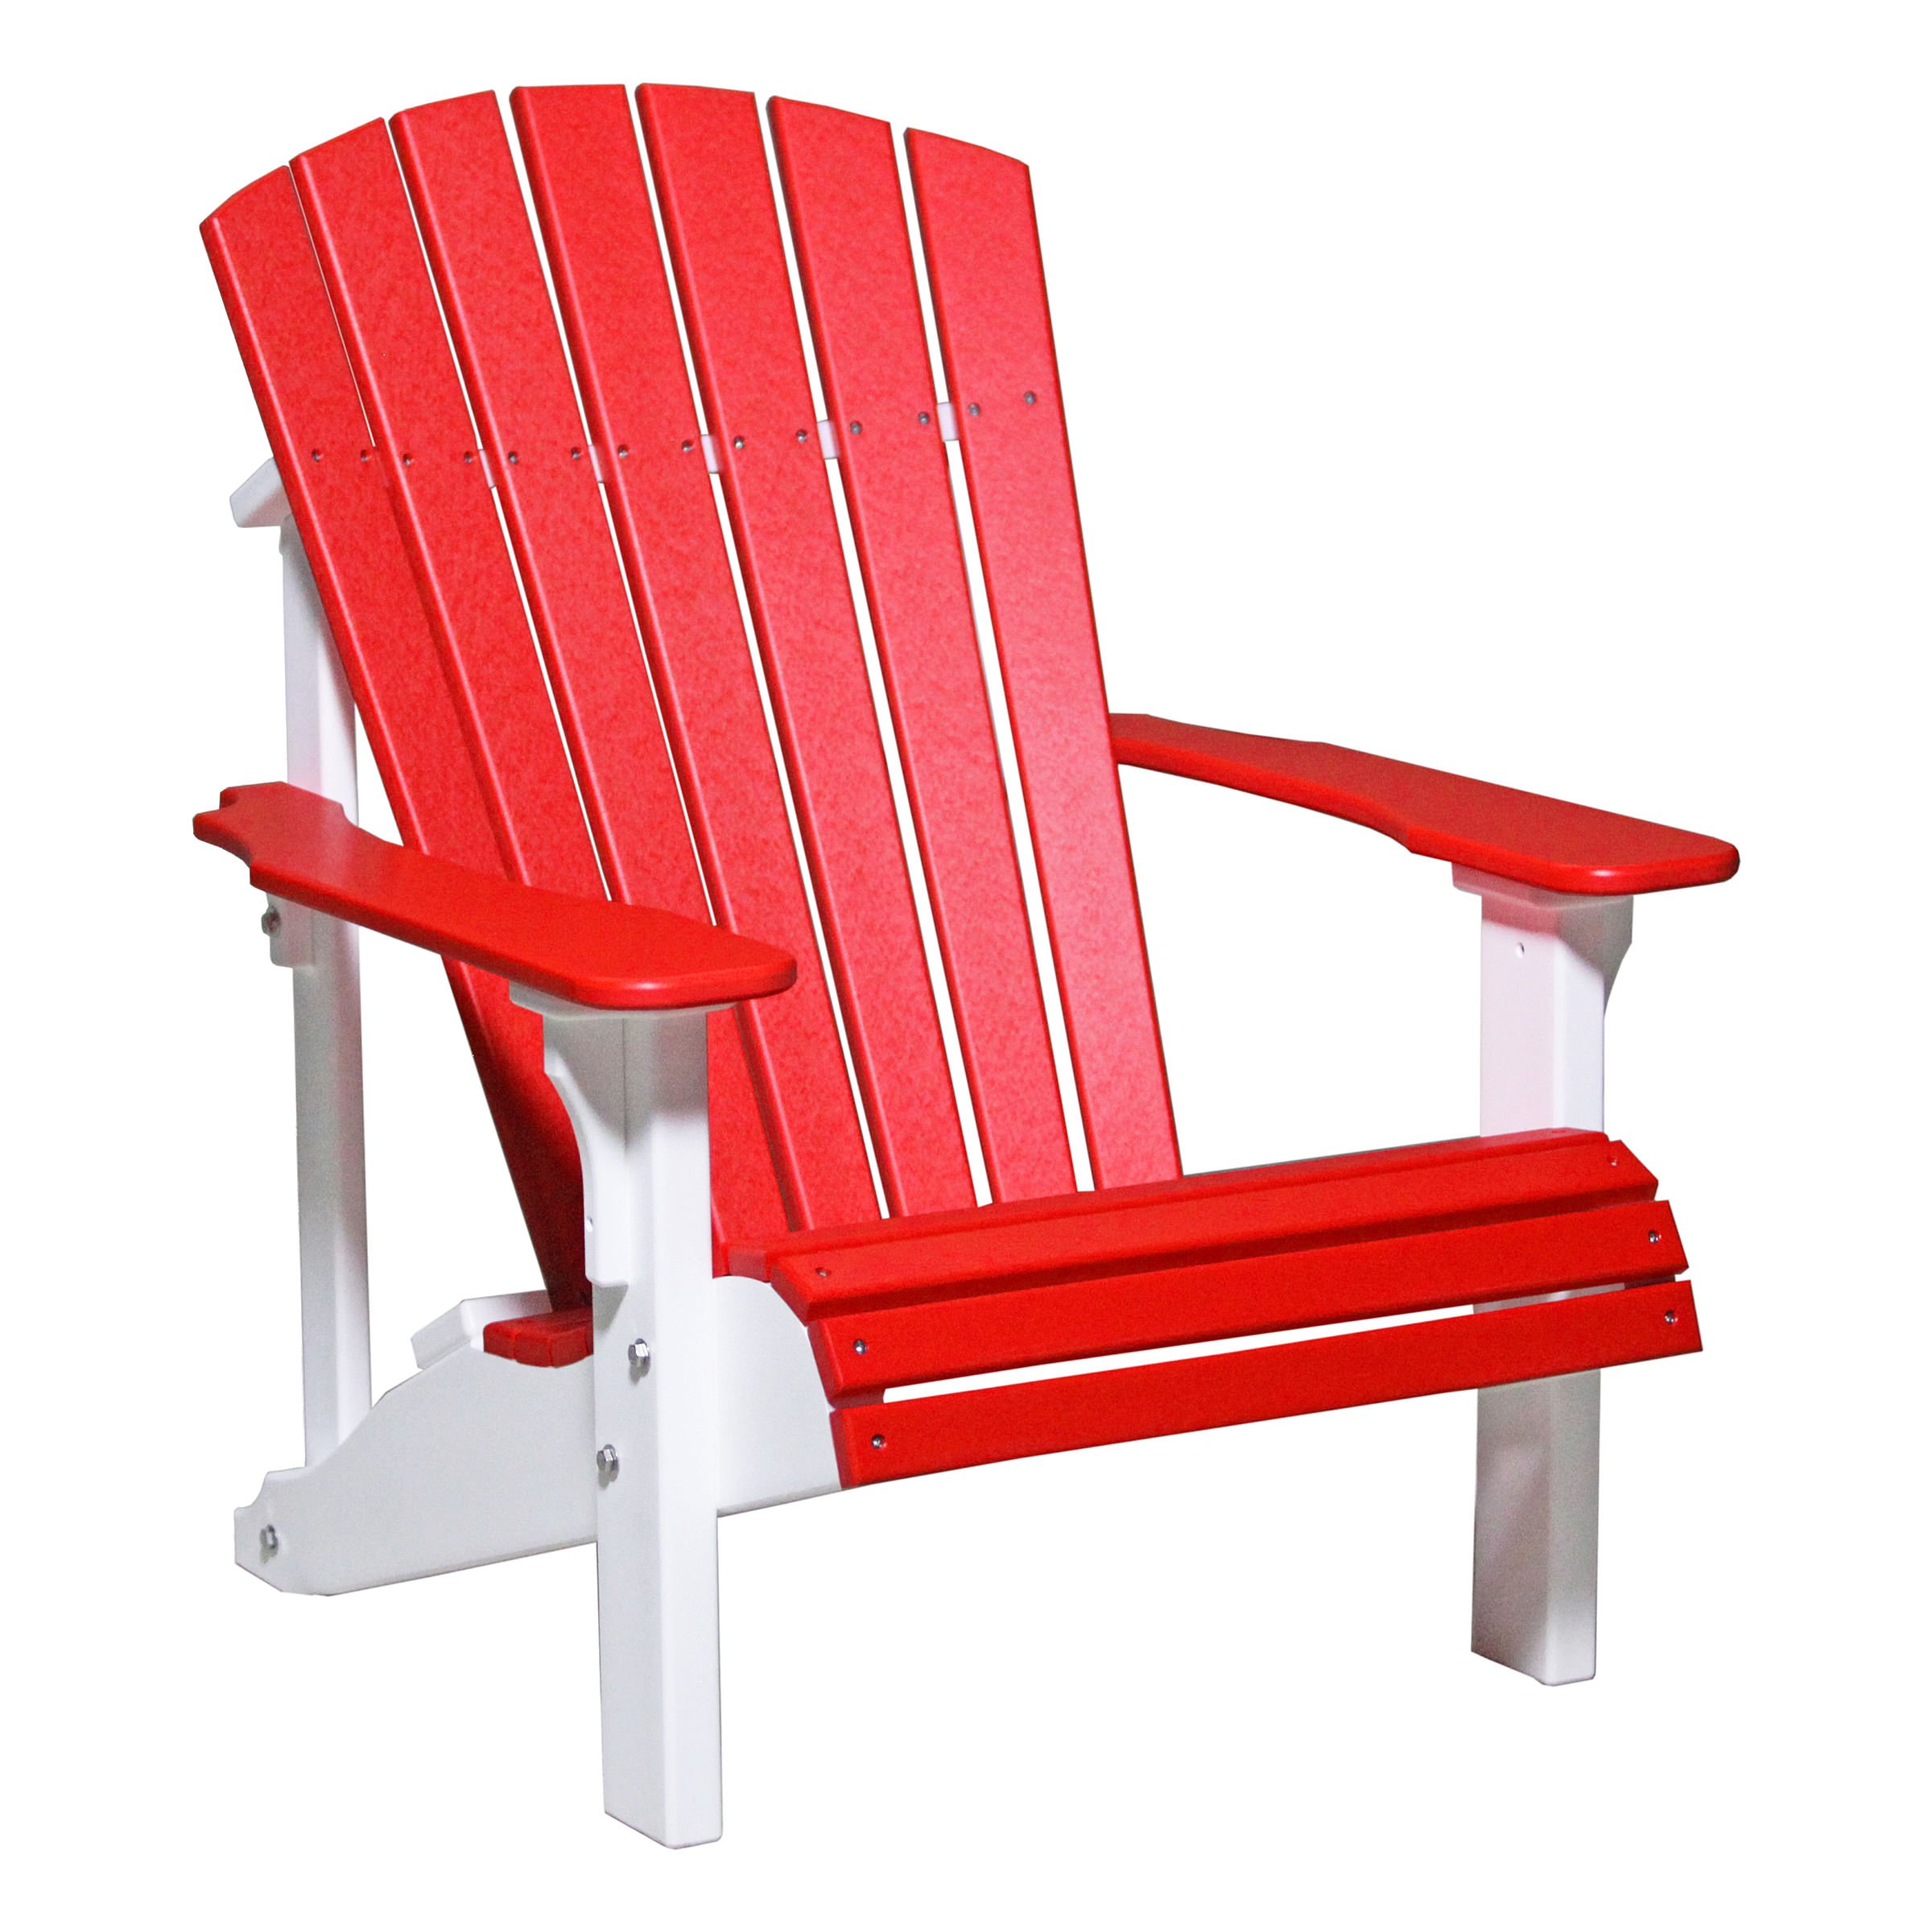 Luxcraft Crestville Deluxe Adirondack Chair in Solid Tropical